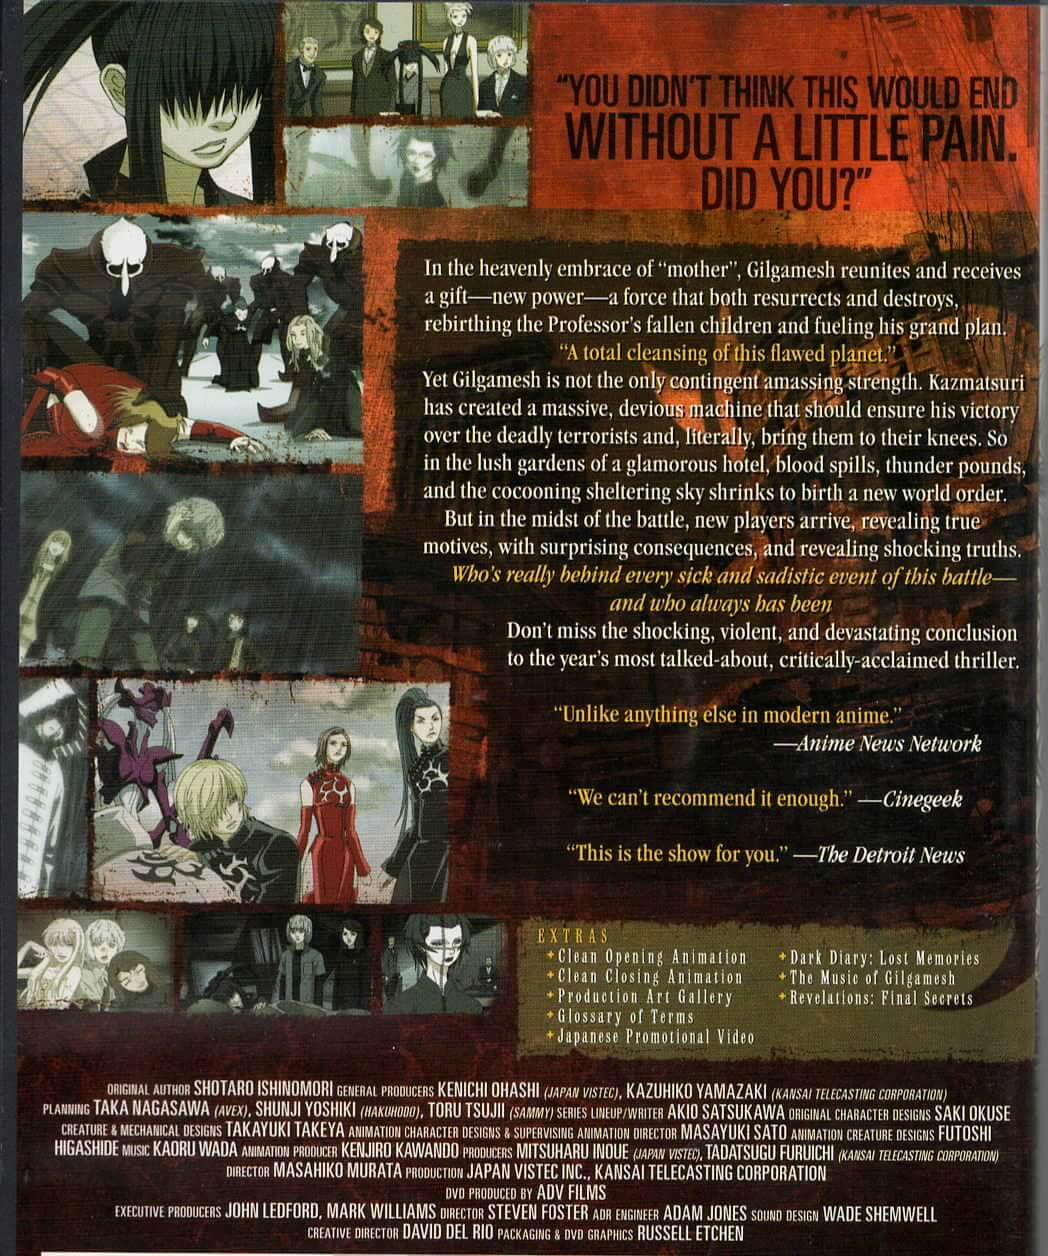 Volume 7 back cover of the Gilgamesh anime with images of Reiko, Orga, the Countess, Uno attacked by the Blattaria, Tatsuya in the rain, Novem and other Gilgamesh, Orga, Tatsuya and Toru watching Reiko sleep, and the Countess with a window frame cross shadowing her face